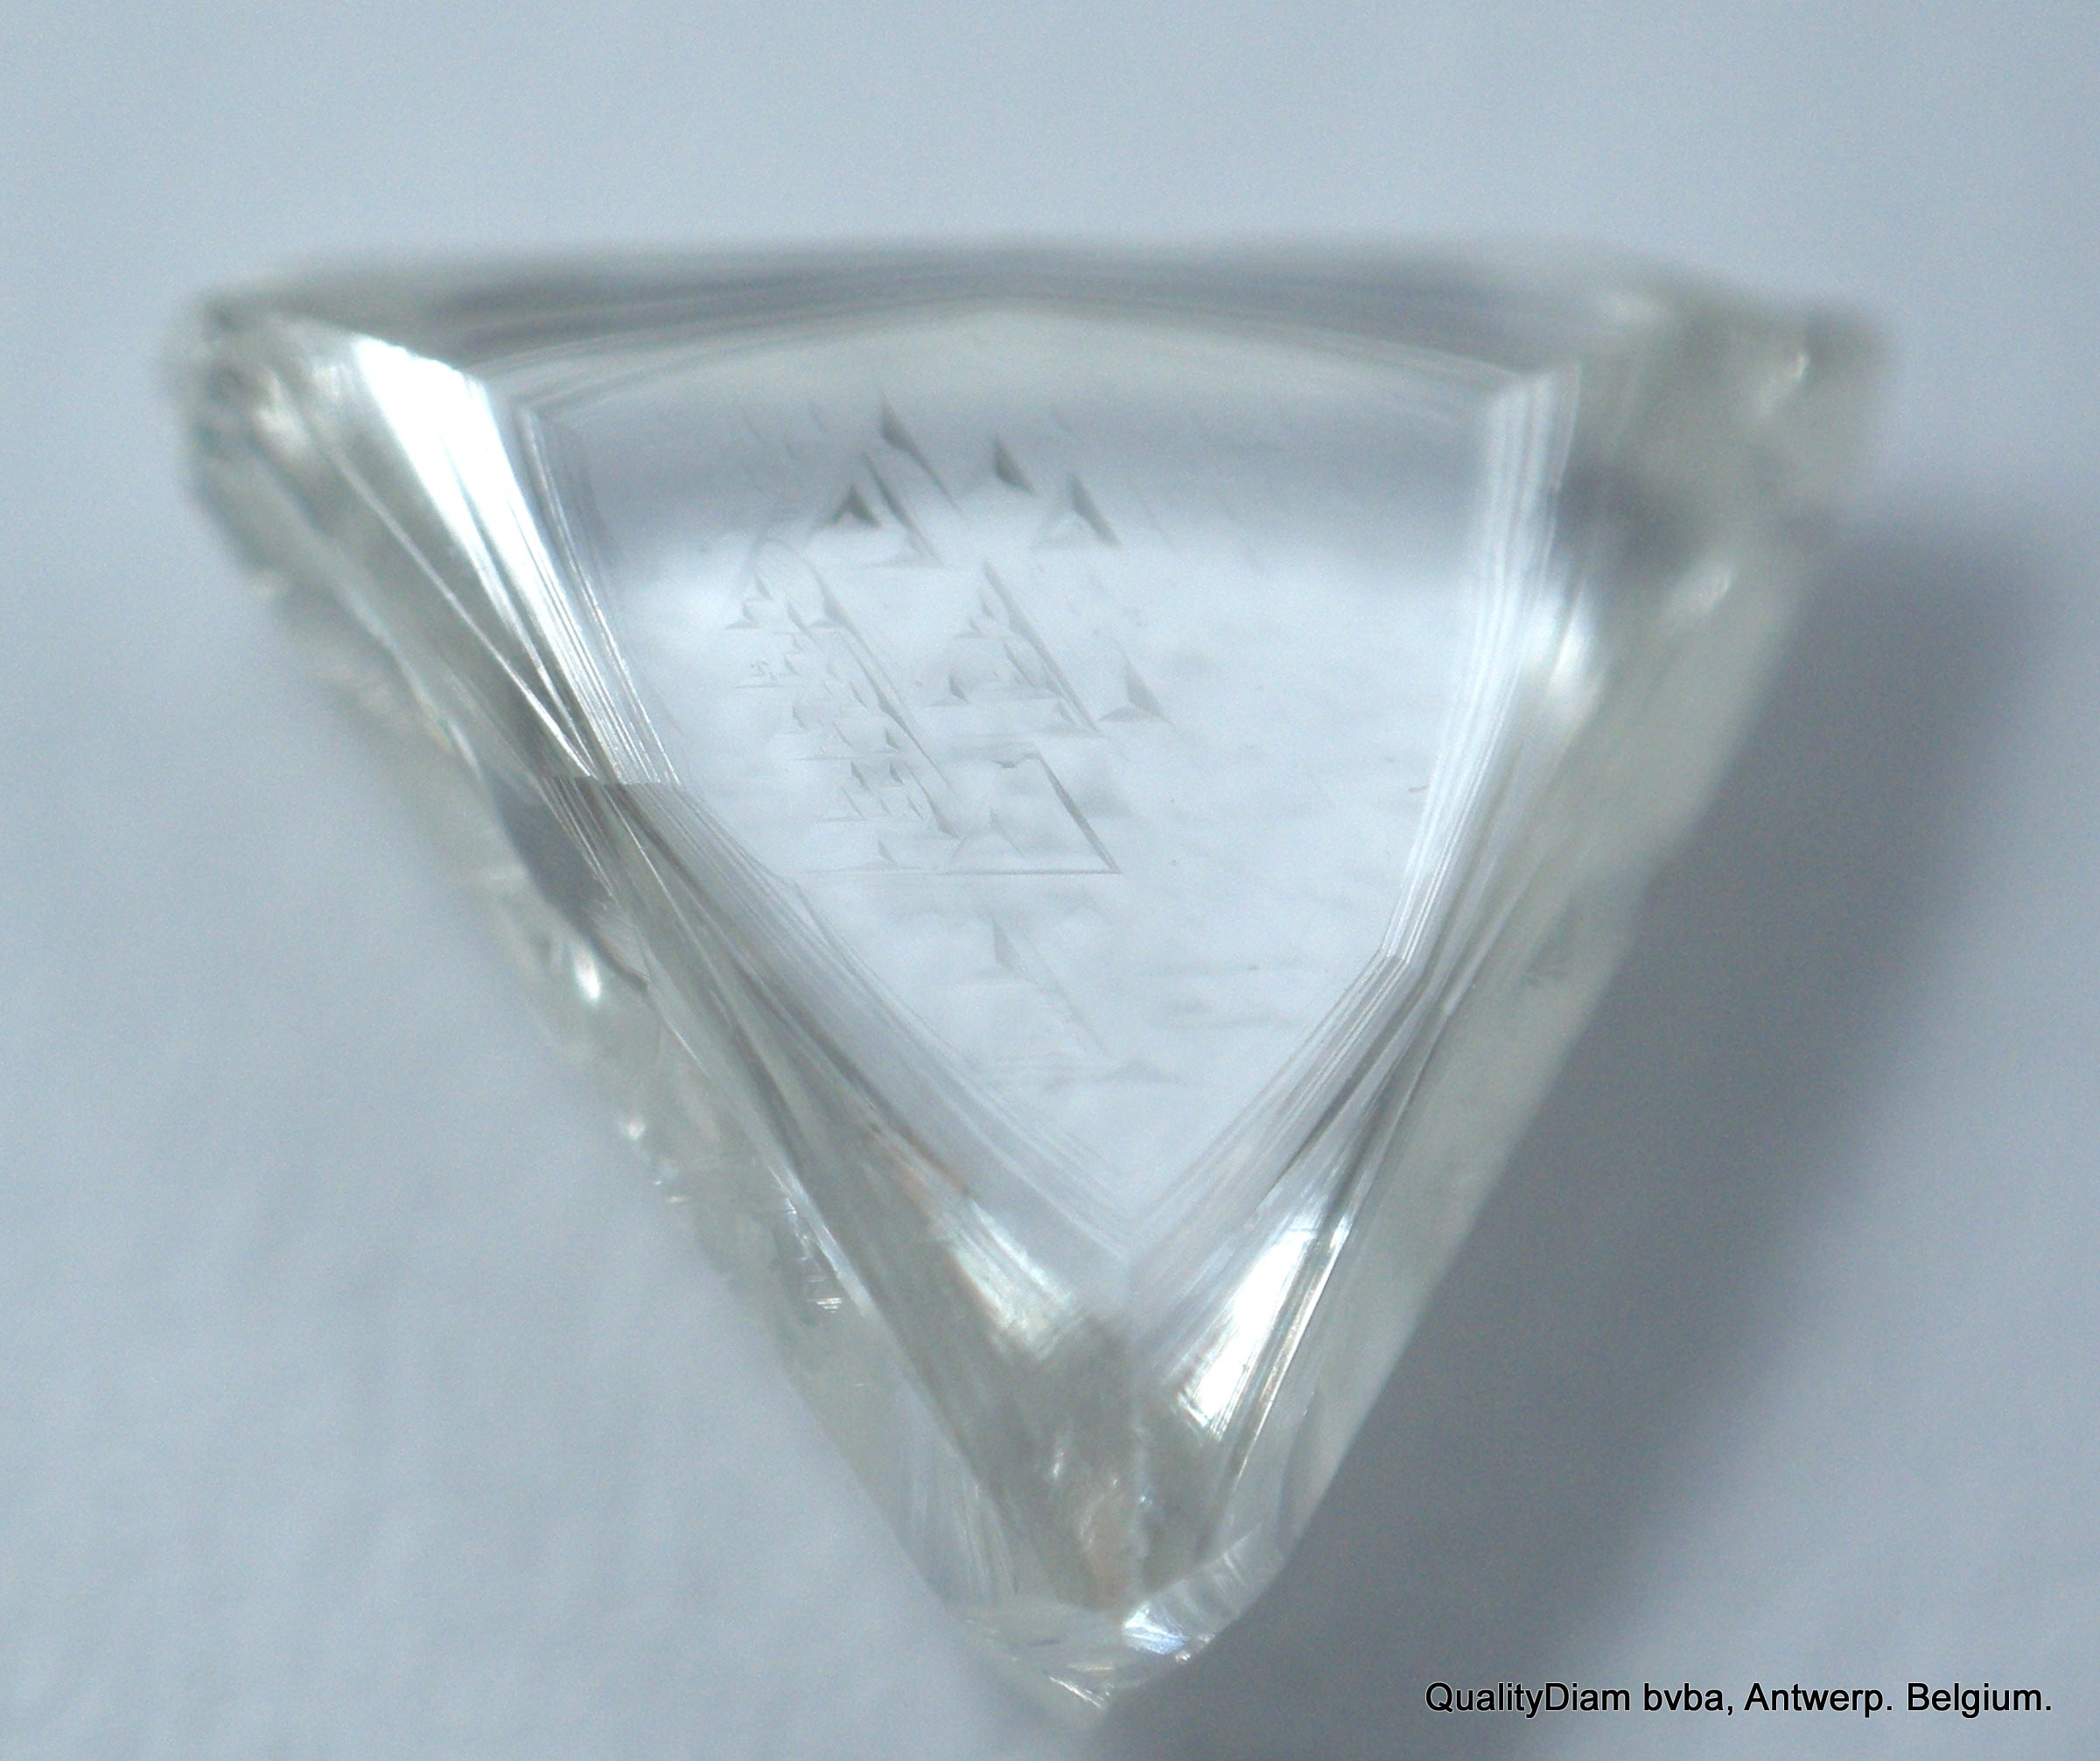 G Vs1 Triangle Shape Natural raw Diamond Recenlty Mined Out Uncut Gem